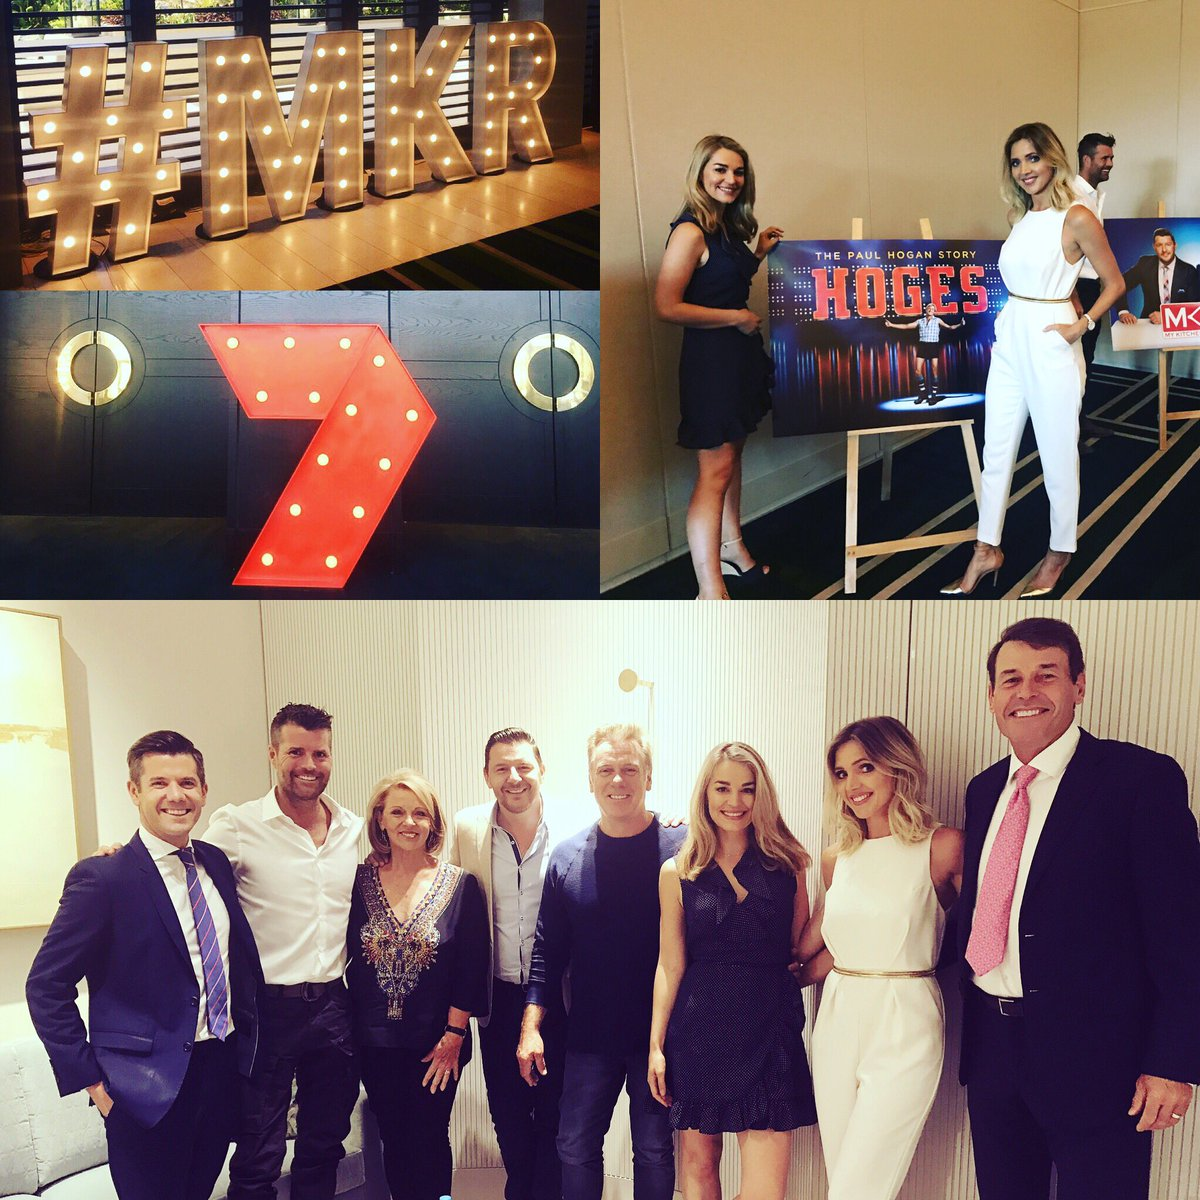 Channel Seven Perth on Twitter: